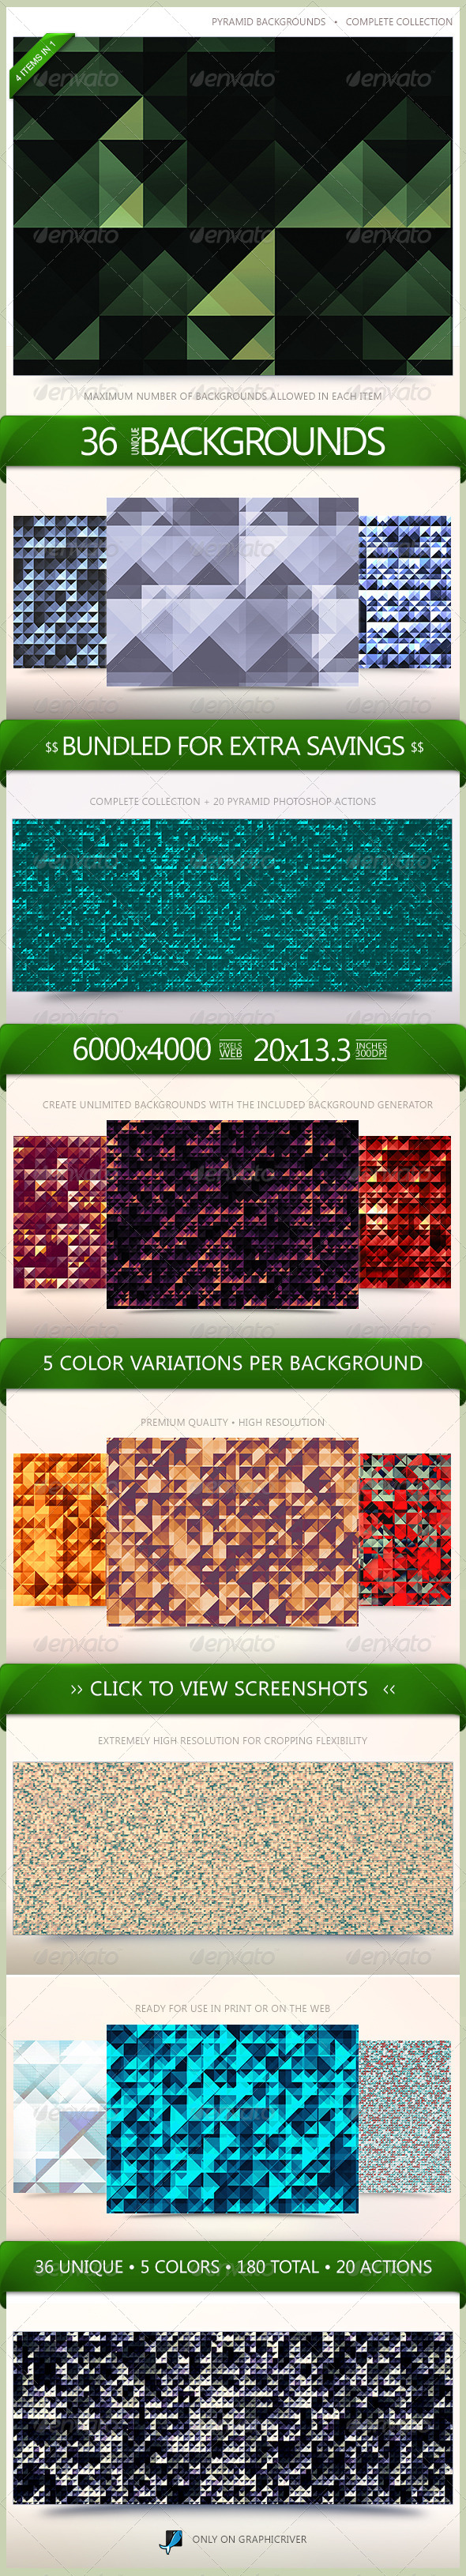 GraphicRiver Pyramid Backgrounds Bundle 6522815